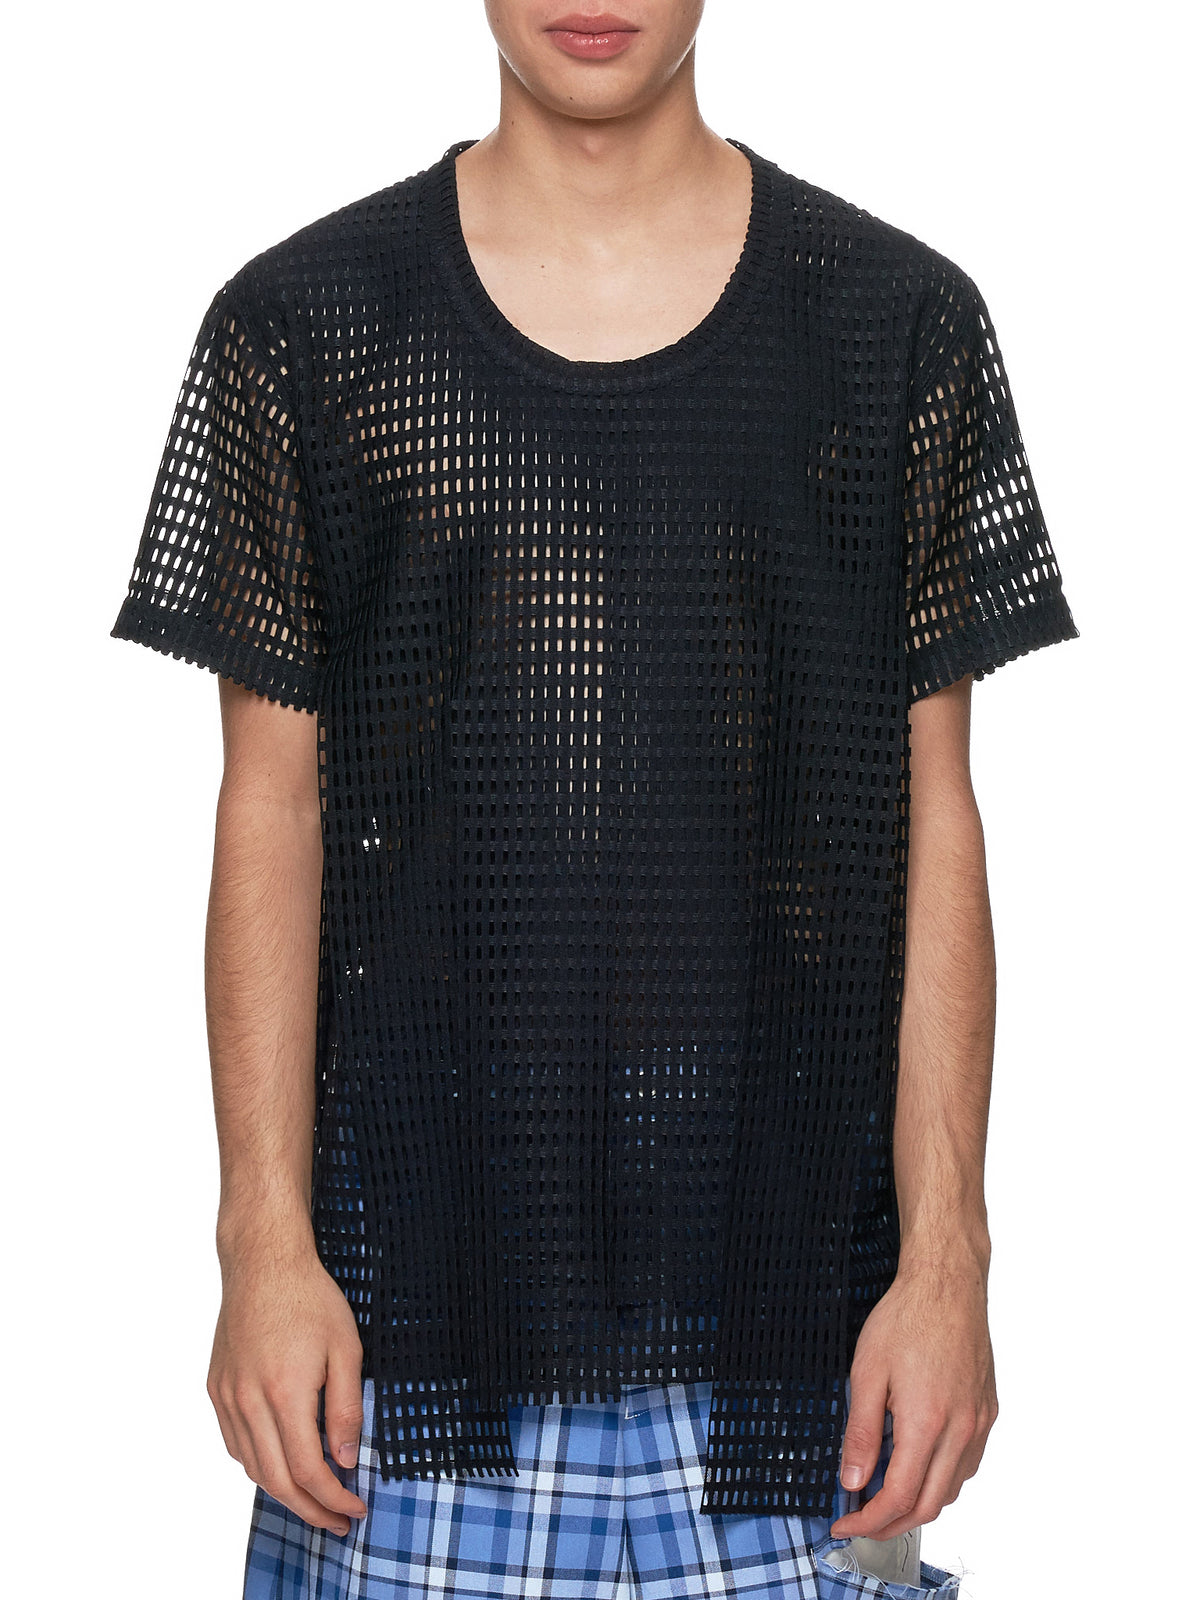 Cut-Out T-Shirt (PC-T011-051-BLACK)